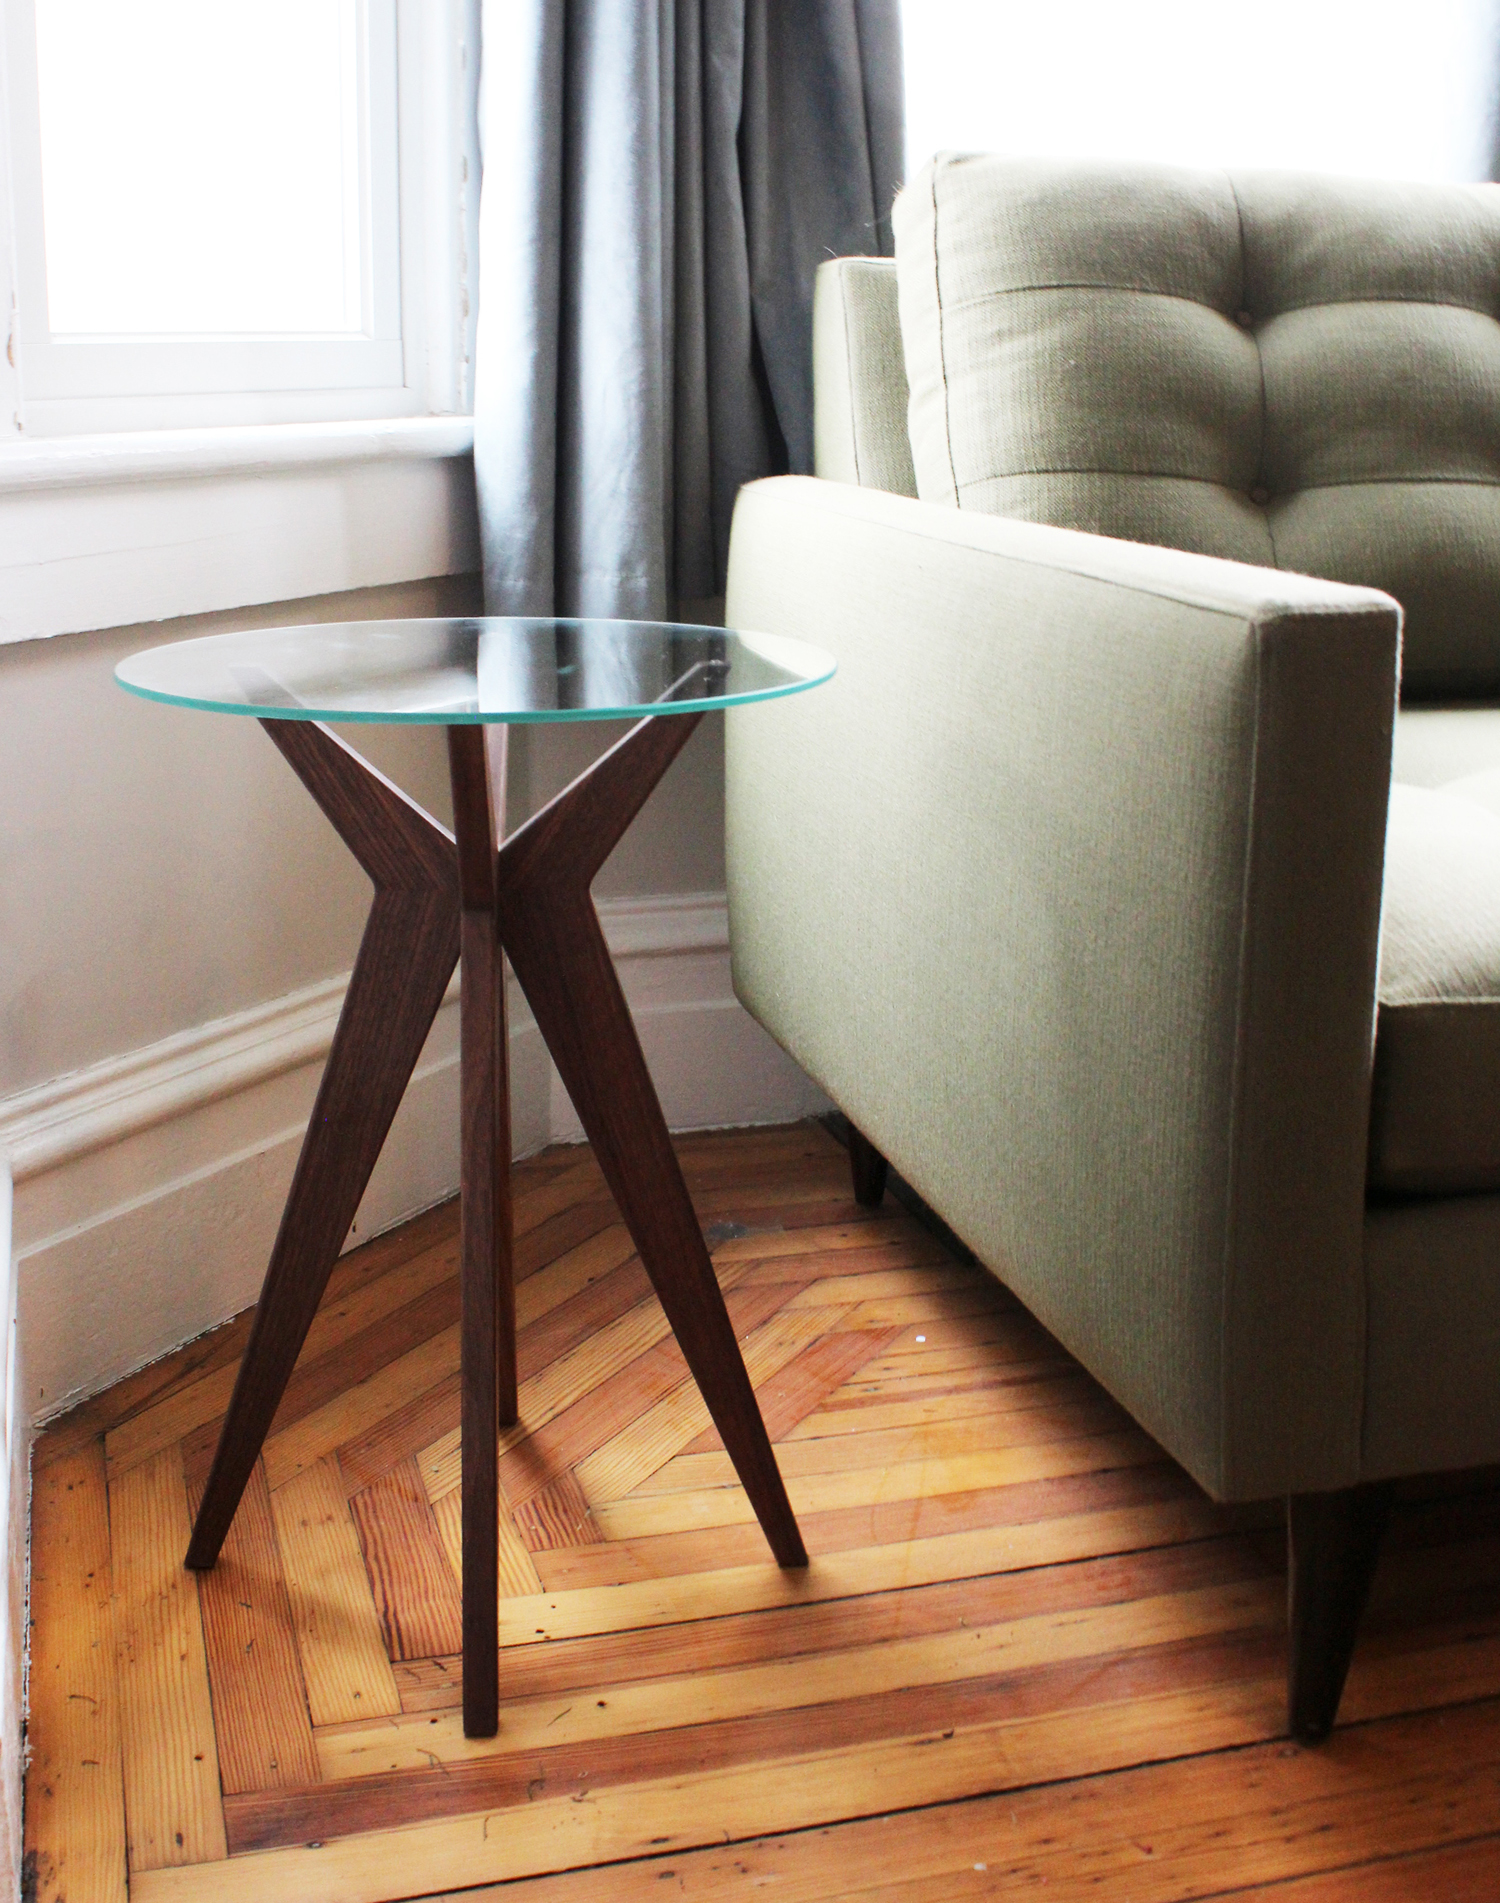 Jax table in walnut and glass